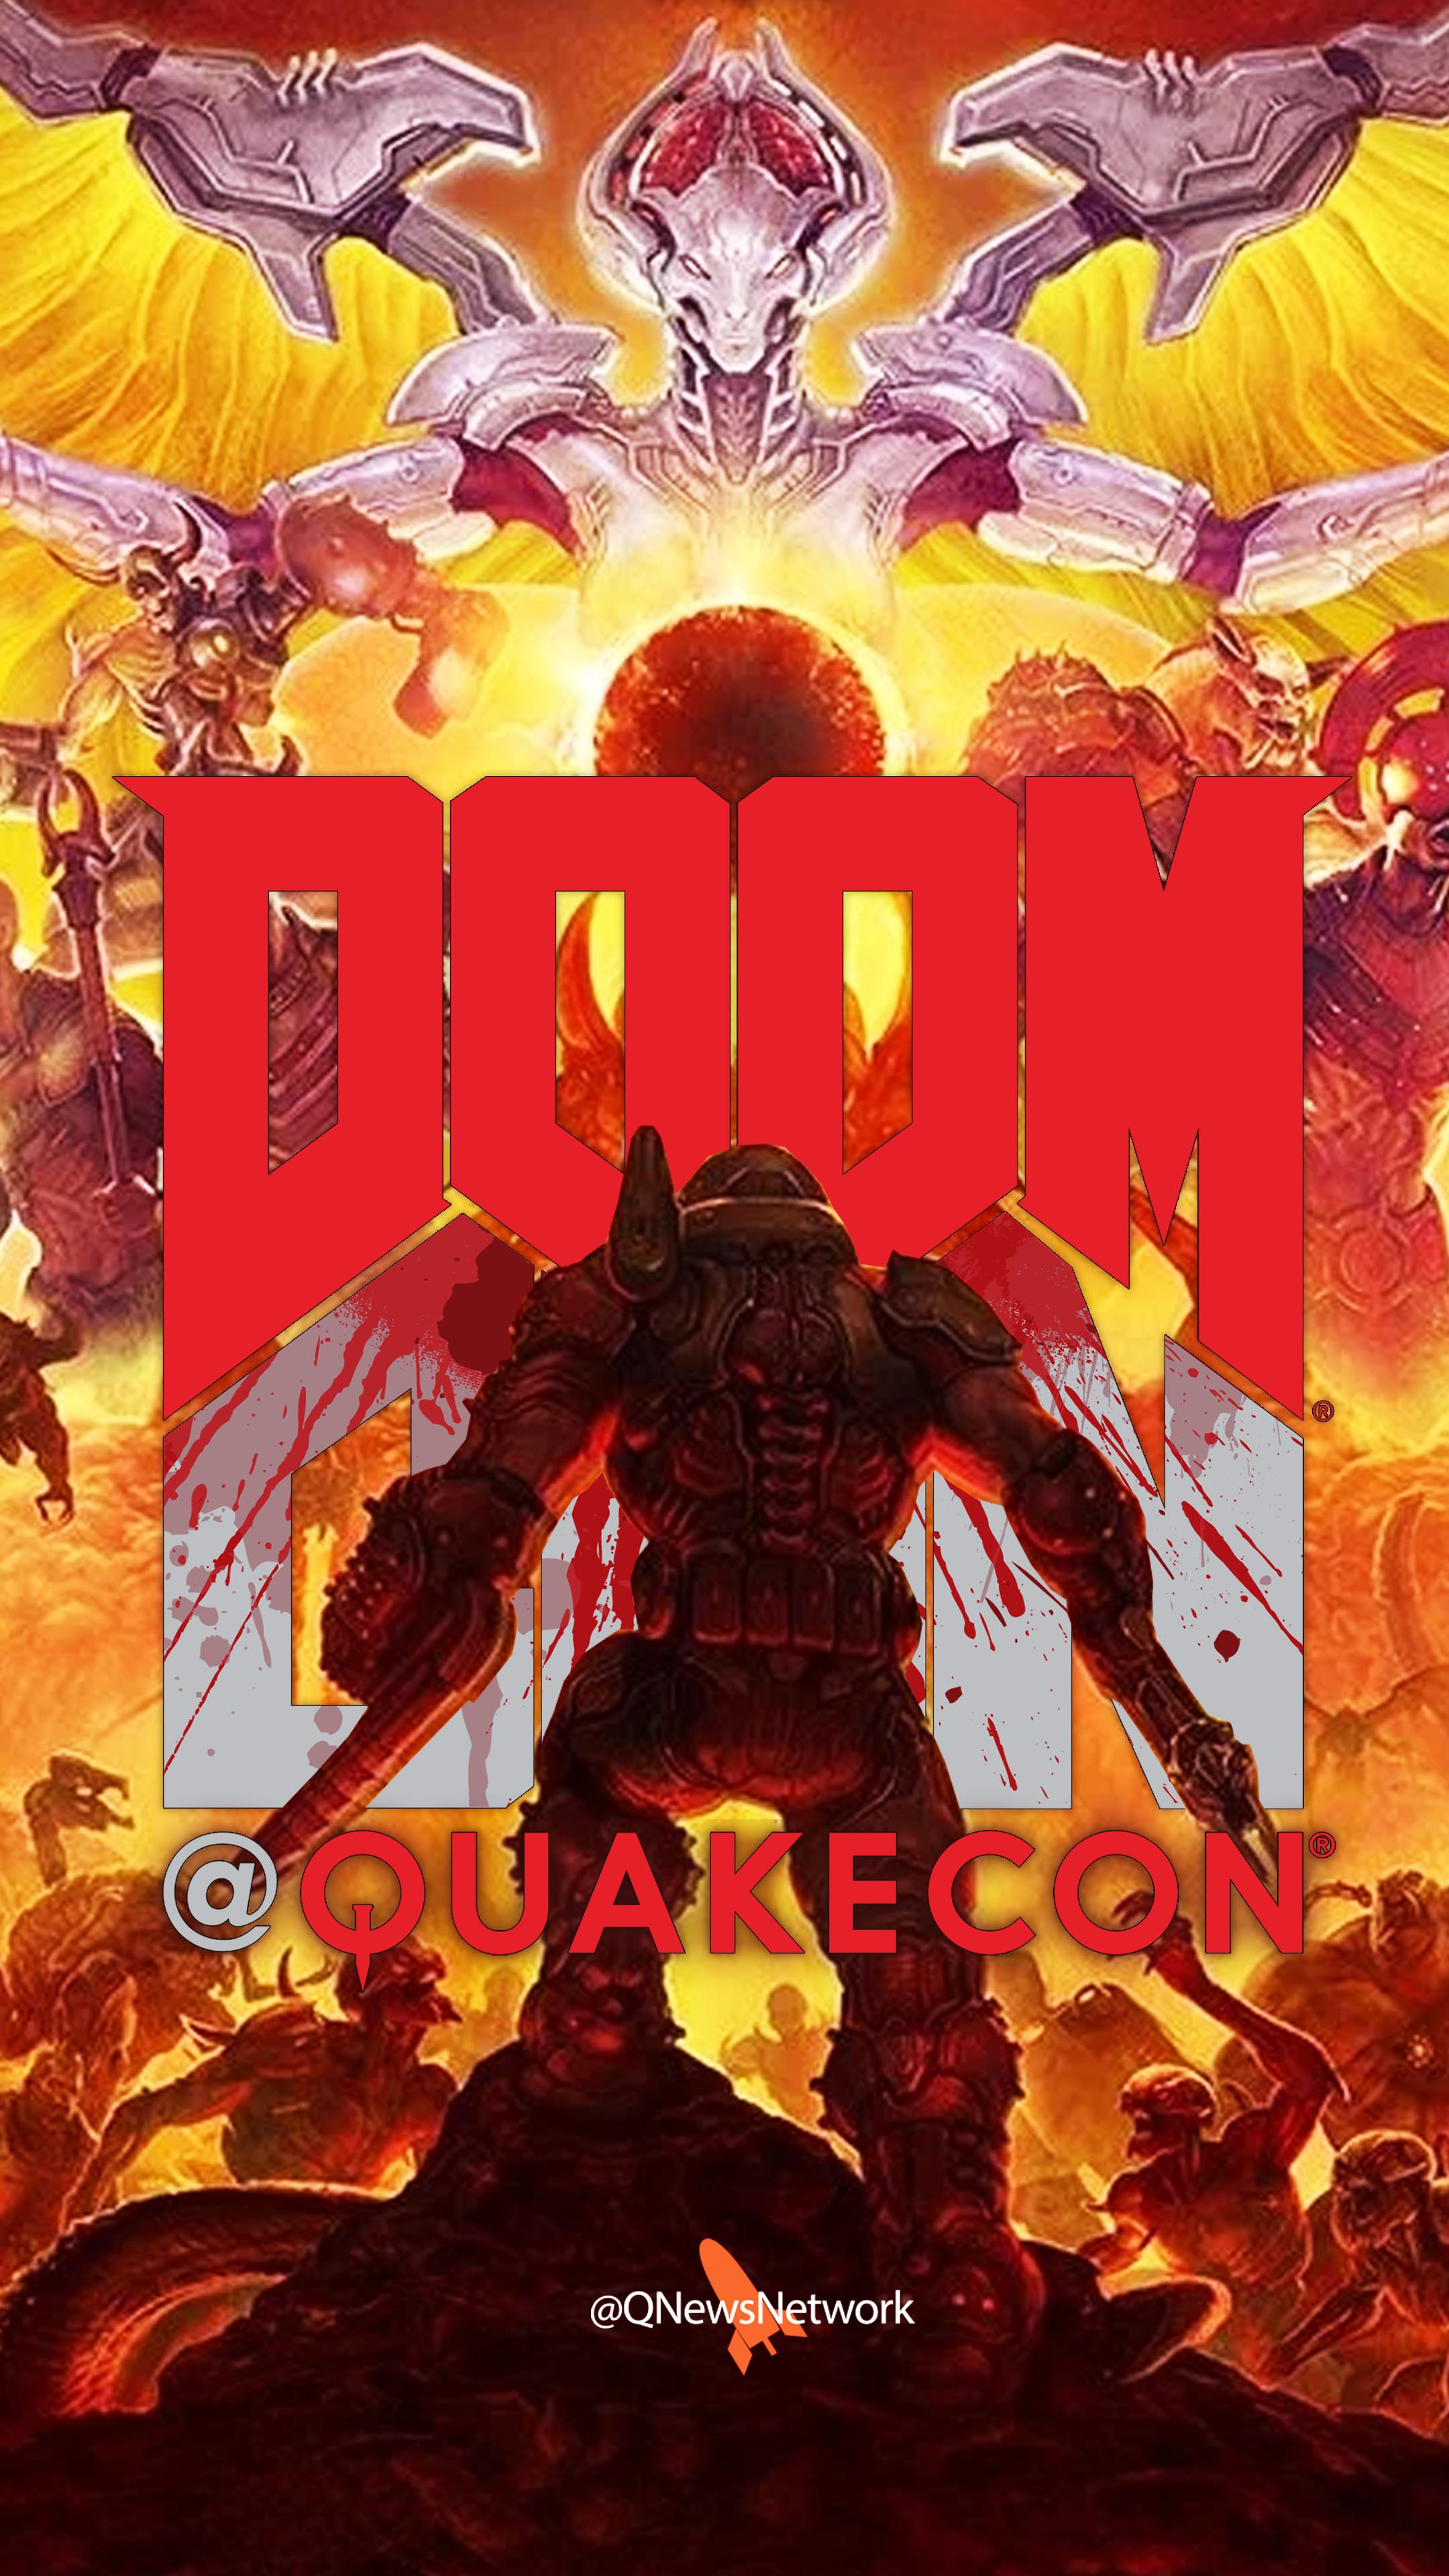 Quakecon 2019 Wallpaper Doomcon Doomguy Facing Off Q News Network